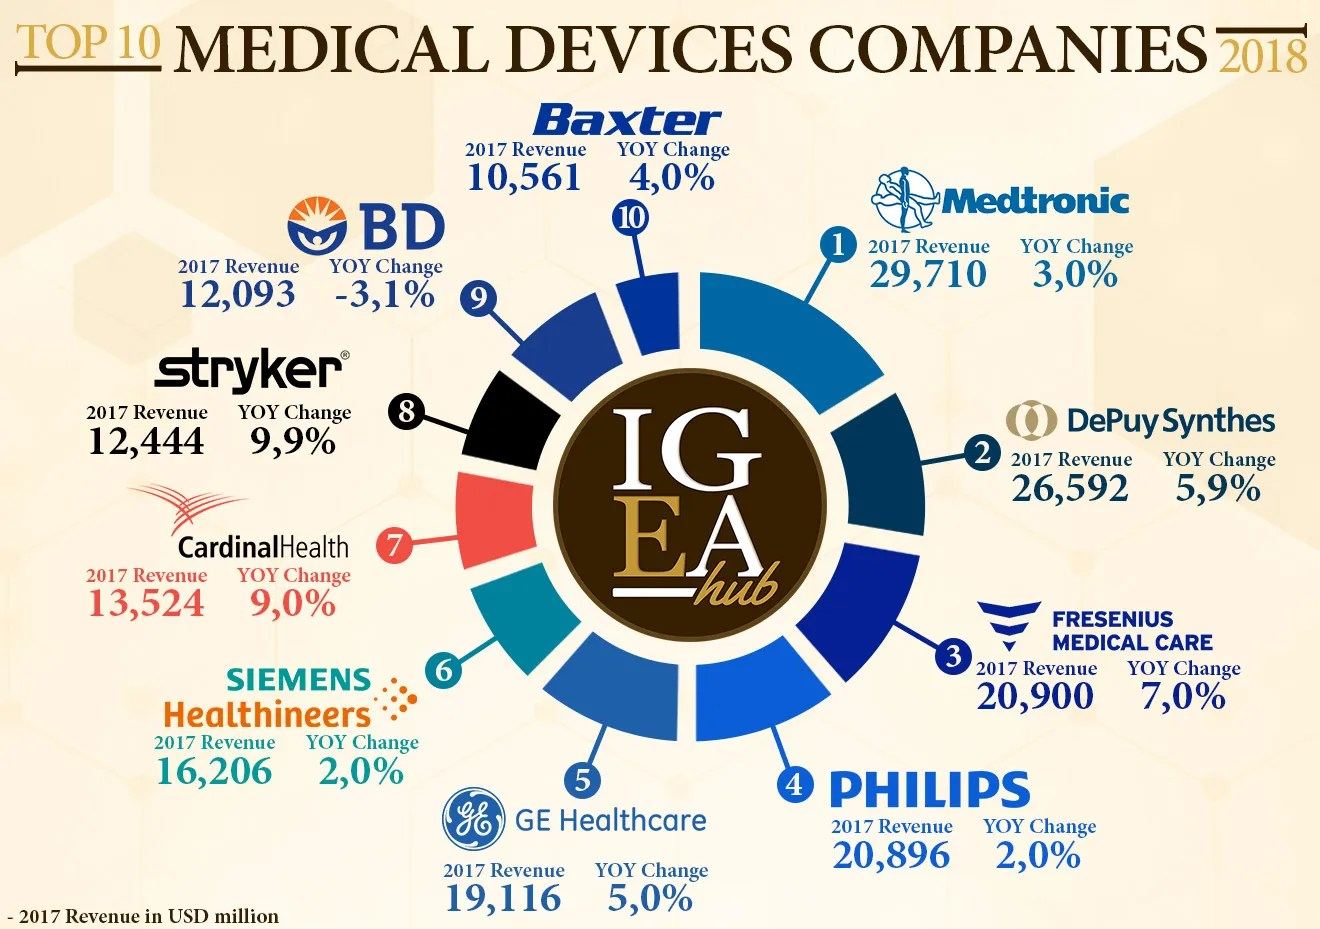 TOP-10-MEDICAL-DEVICES-COMPANIES-2018